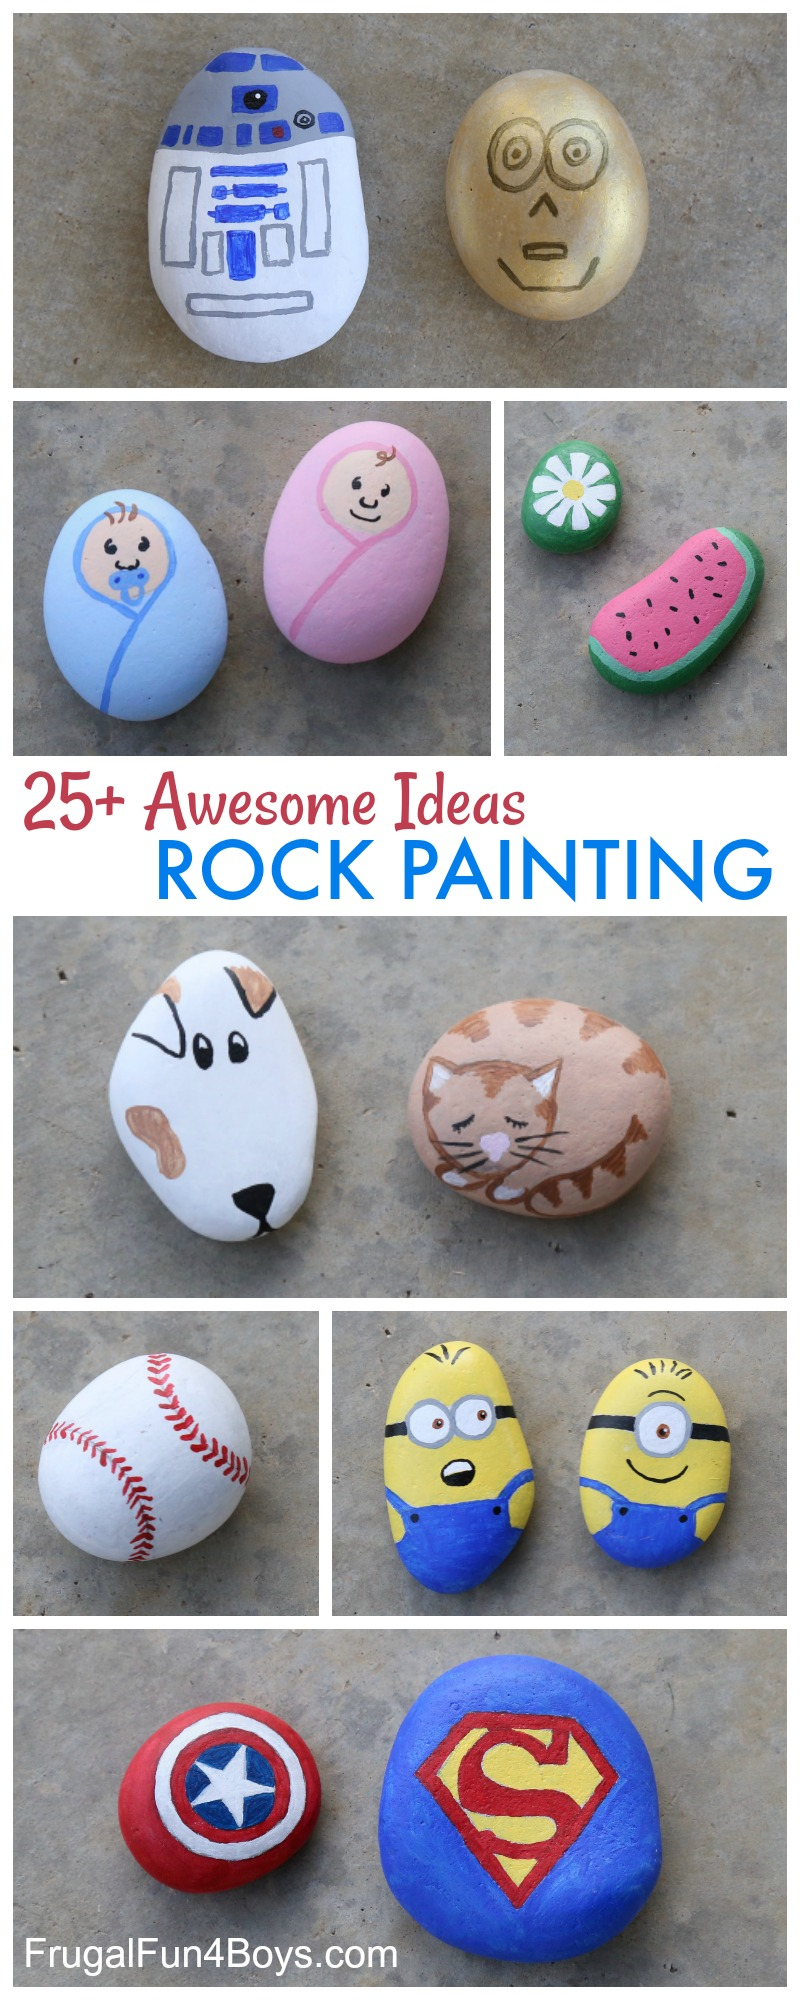 Easy Rock Painting Ideas For Thanksgiving